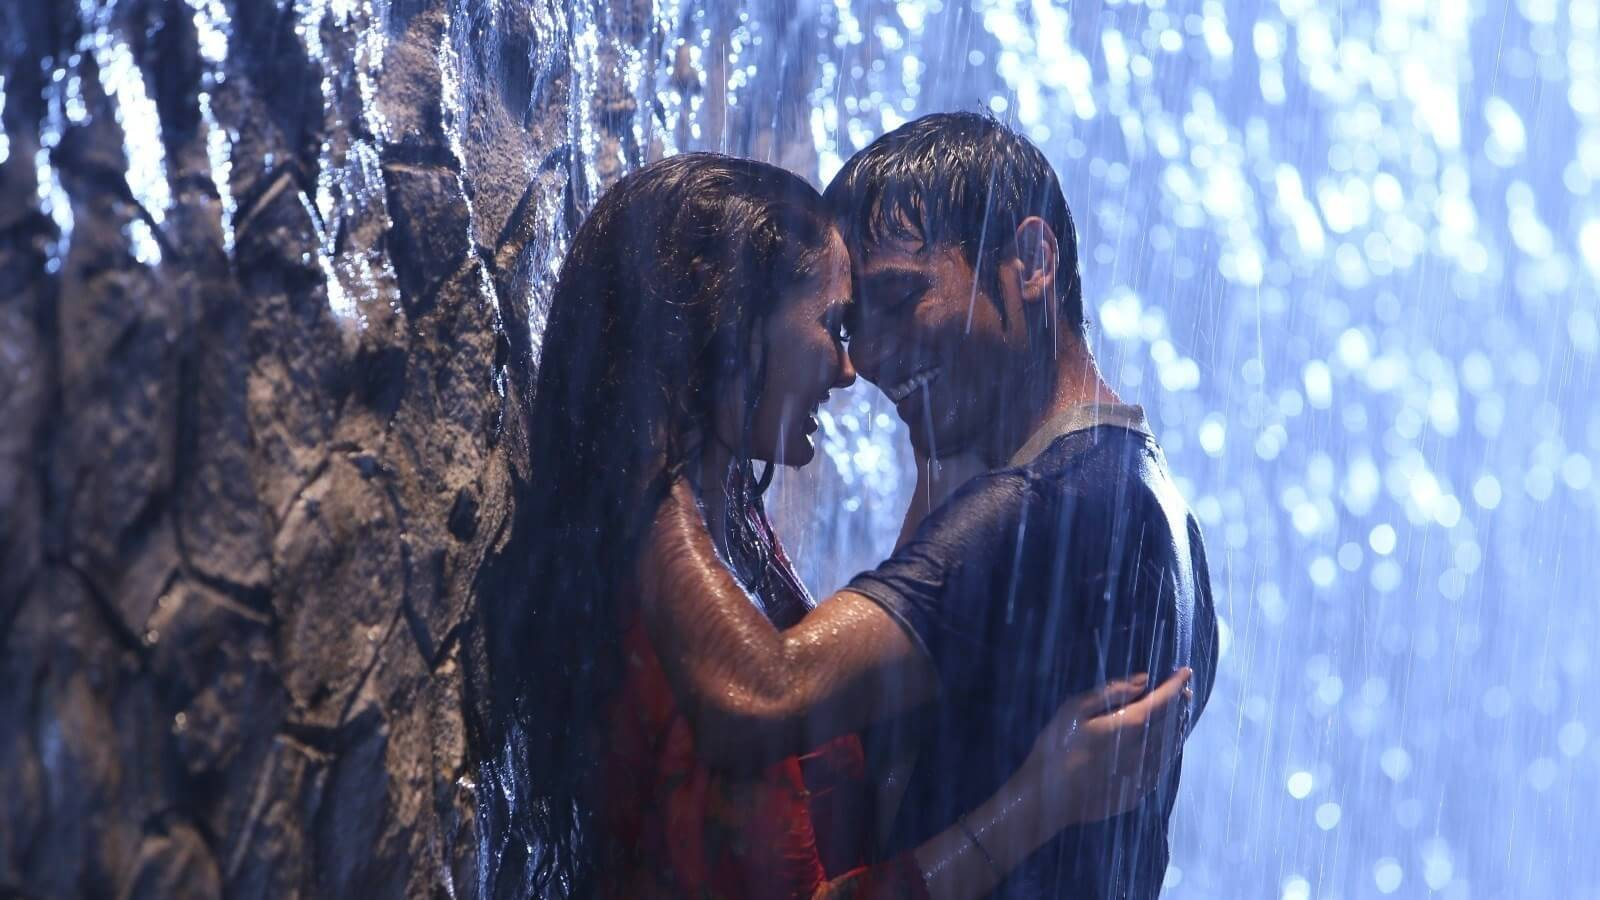 Cute HD Love and Romance Pictures Of Couples In Rain ...